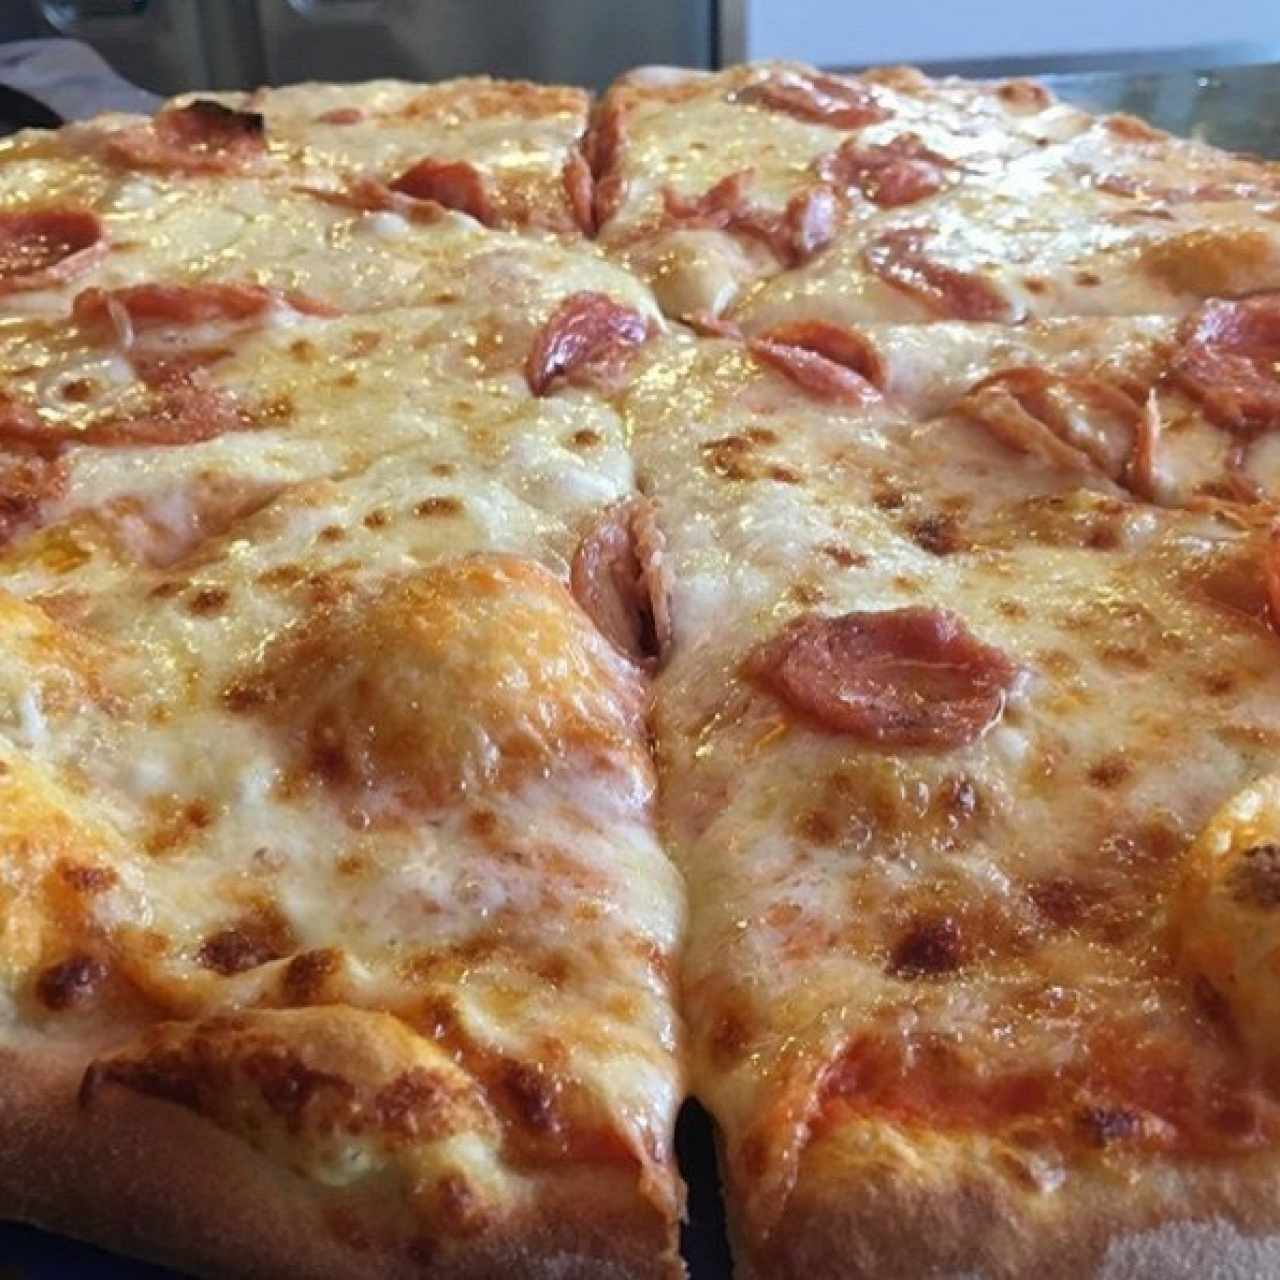 Pizzas - Pepperoni